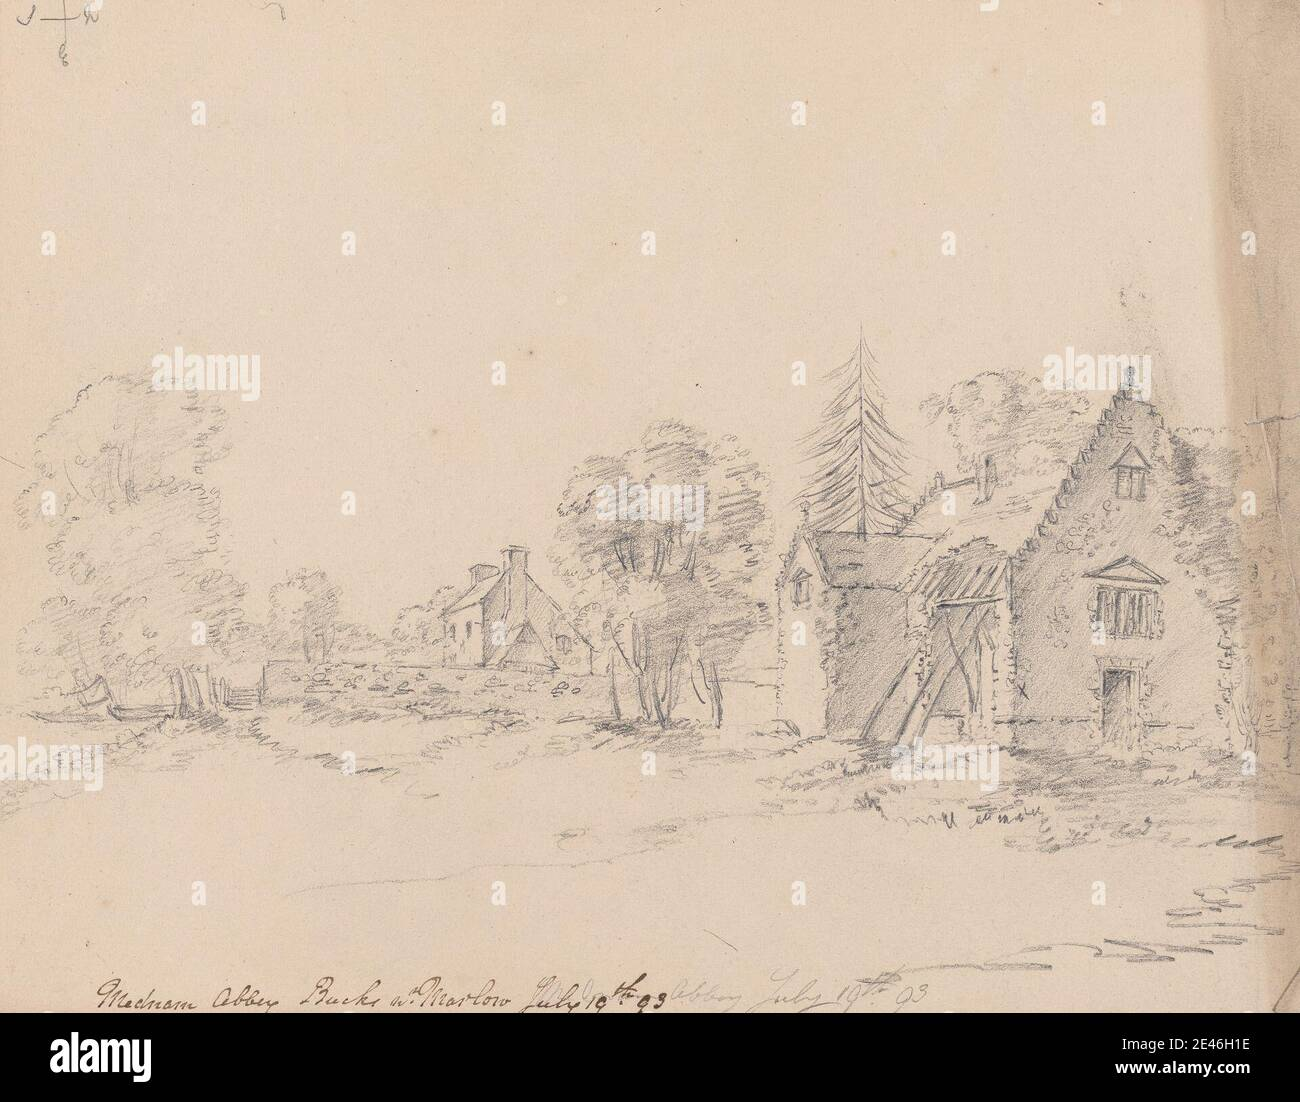 James Moore, 1762–1799, British, Medmenham, England, 1793. Graphite on medium, slightly textured, beige, wove paper. Stock Photo